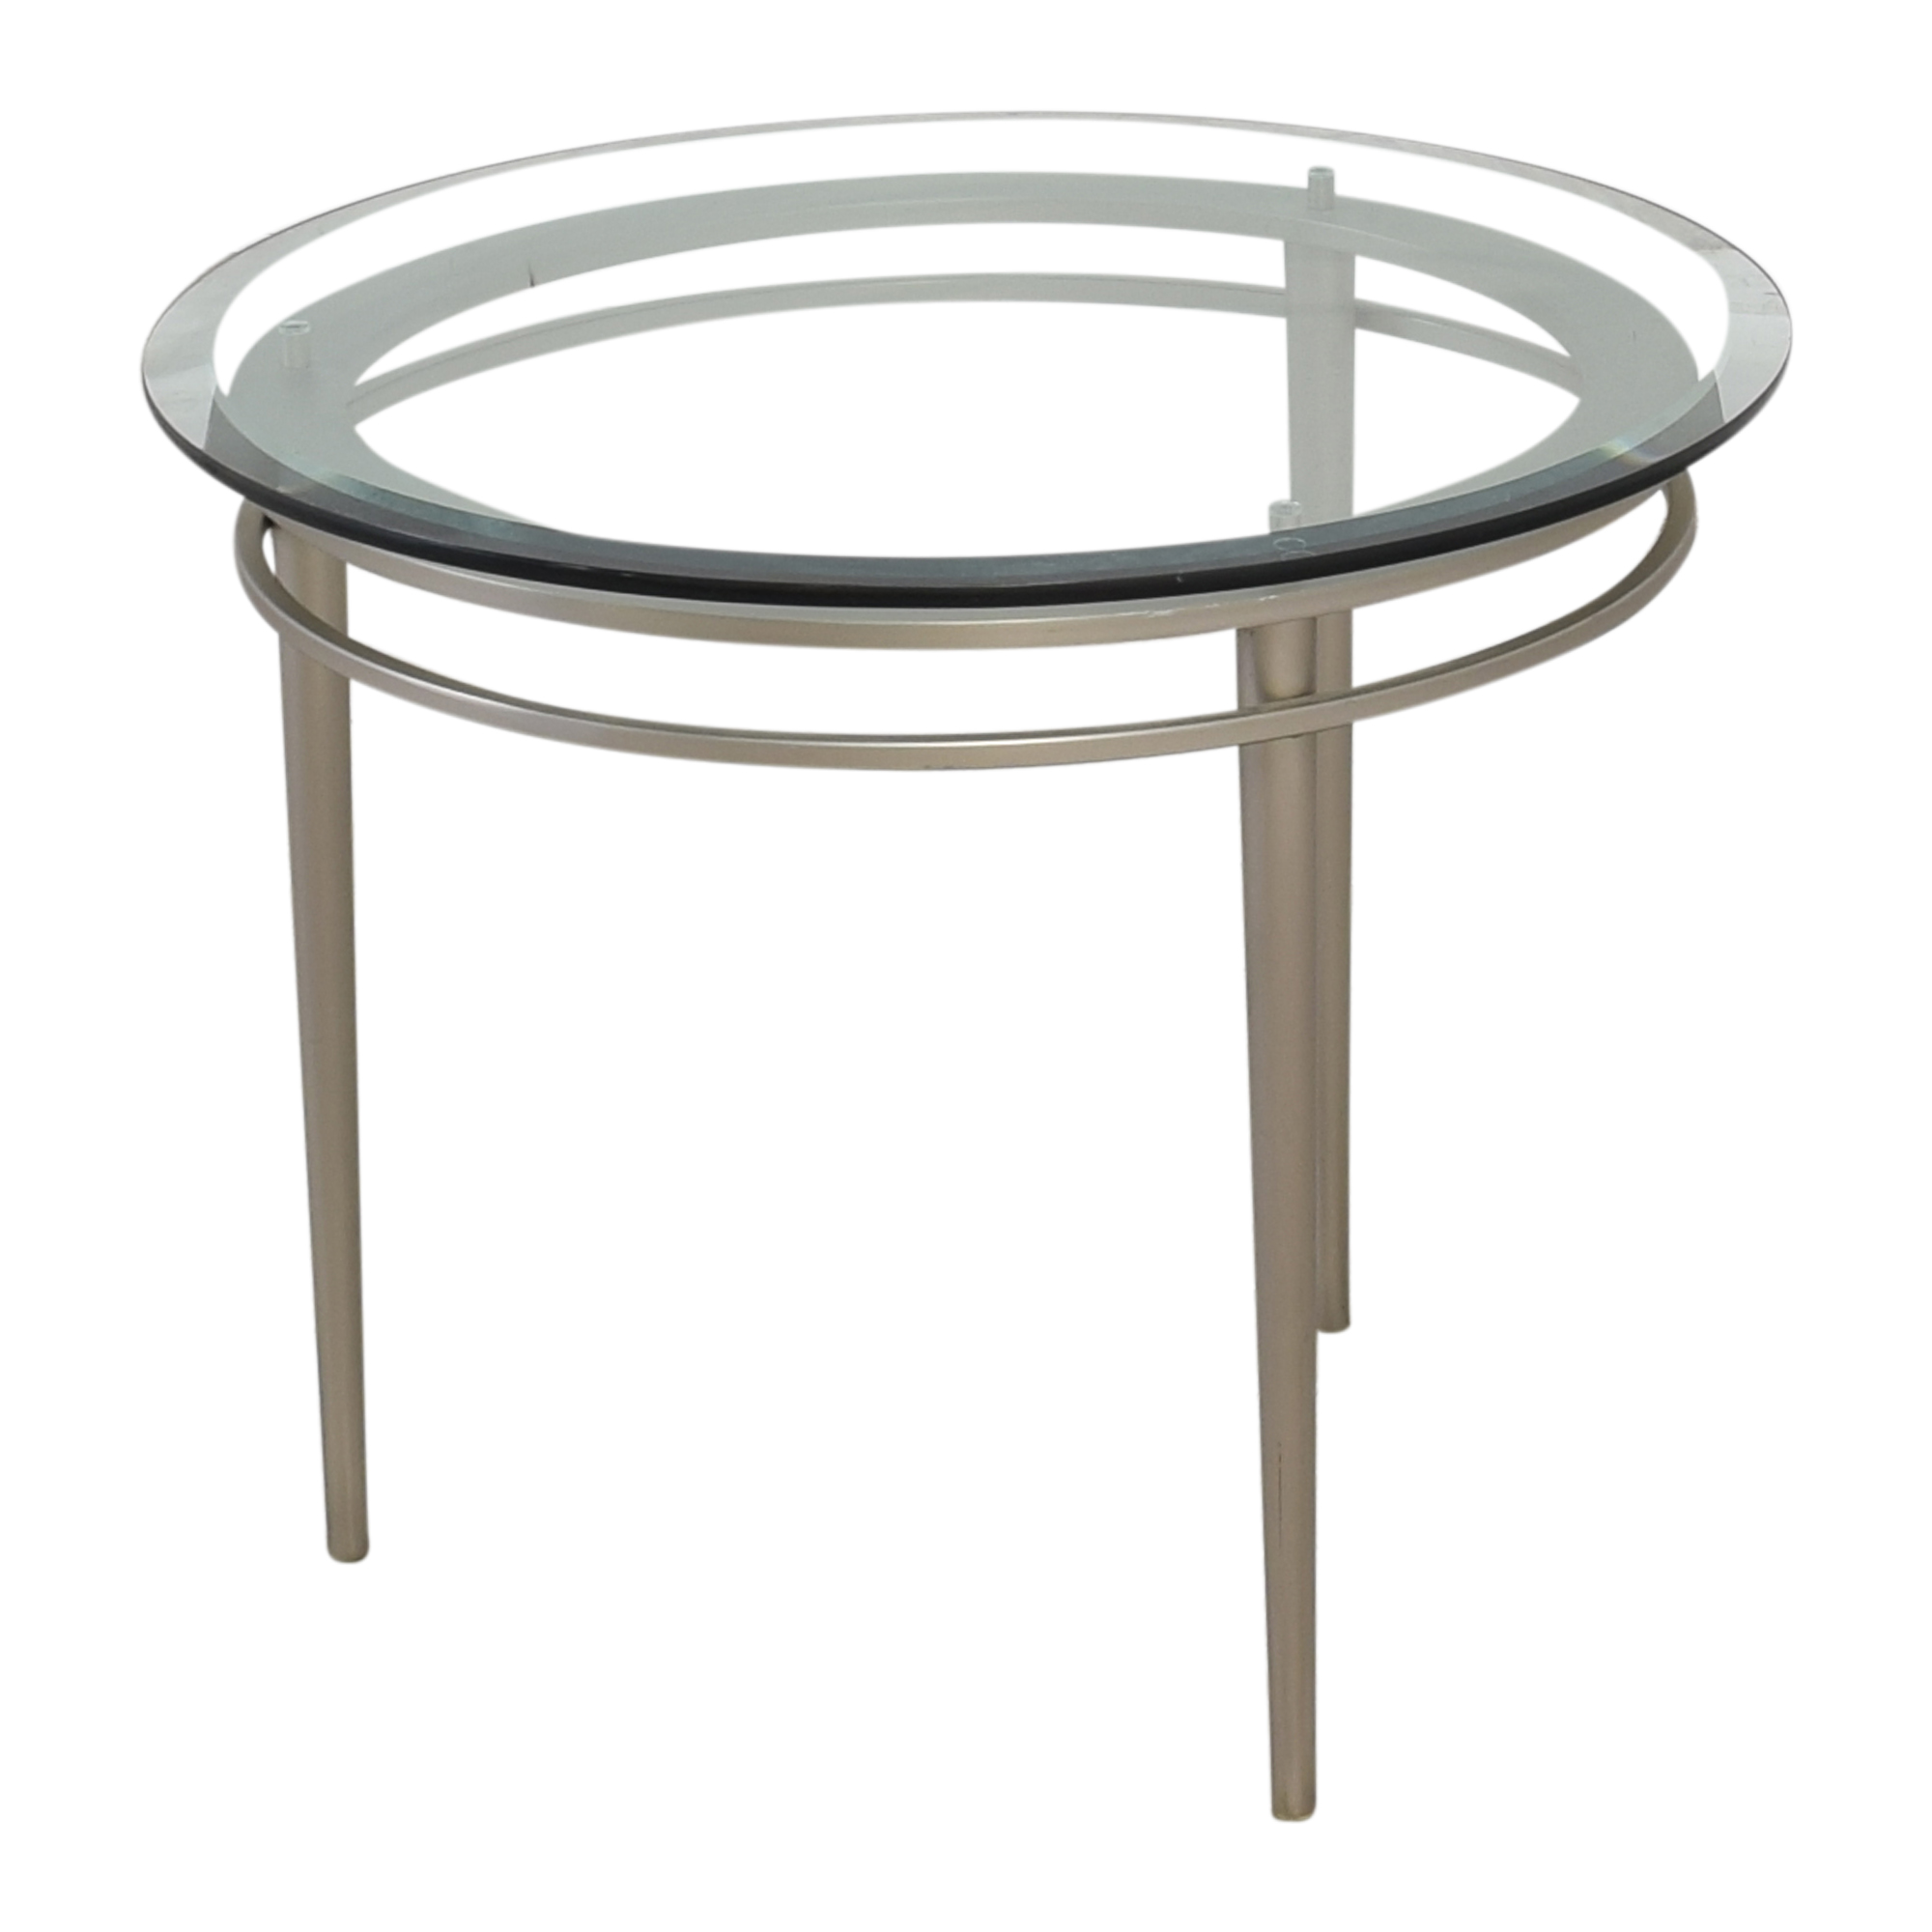 Ethan Allen Ethan Allen Round Top Side Table coupon